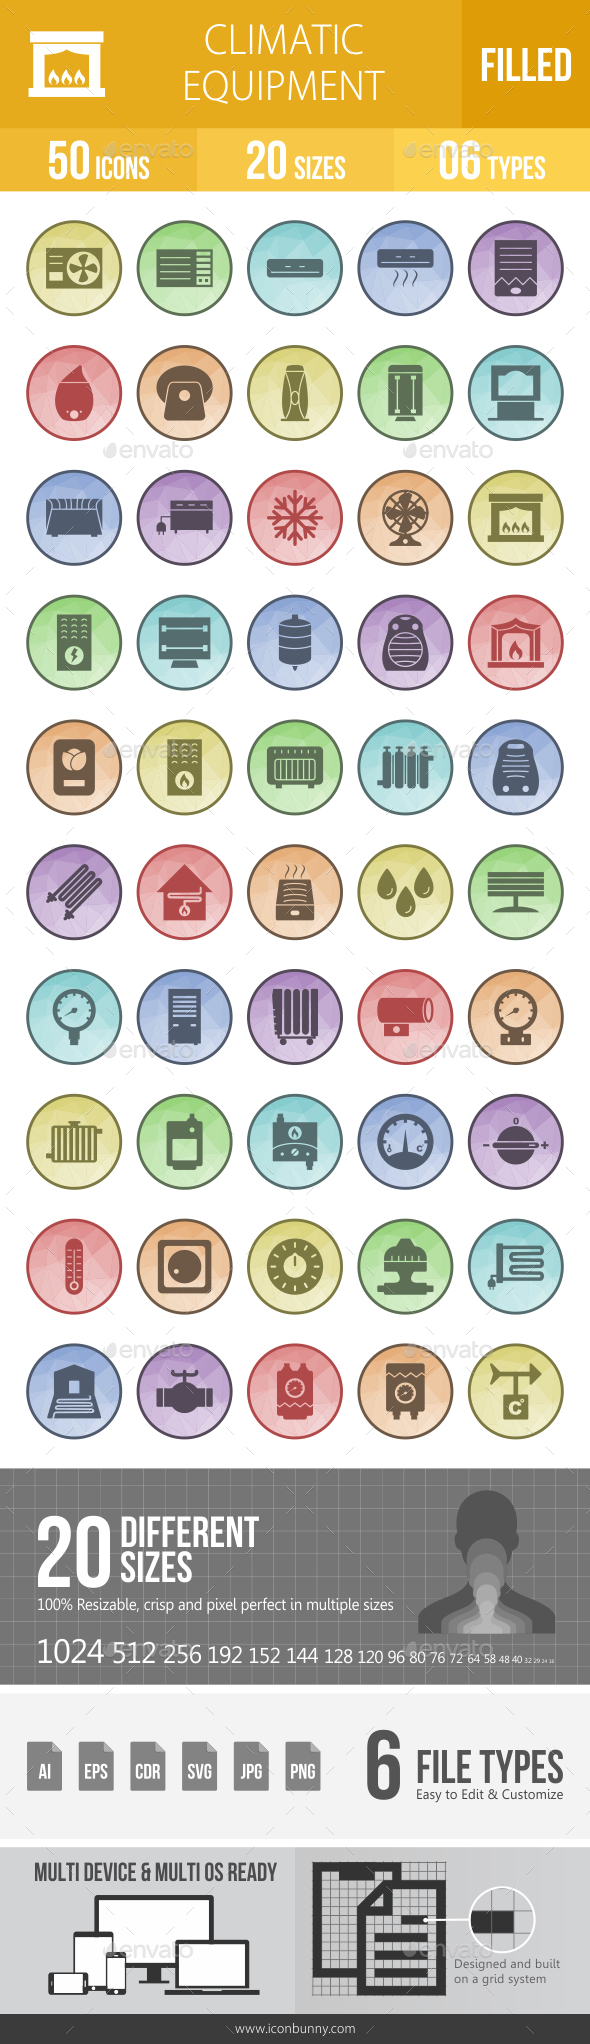 Climatic Equipment Filled Low Poly B/G Icons - Icons